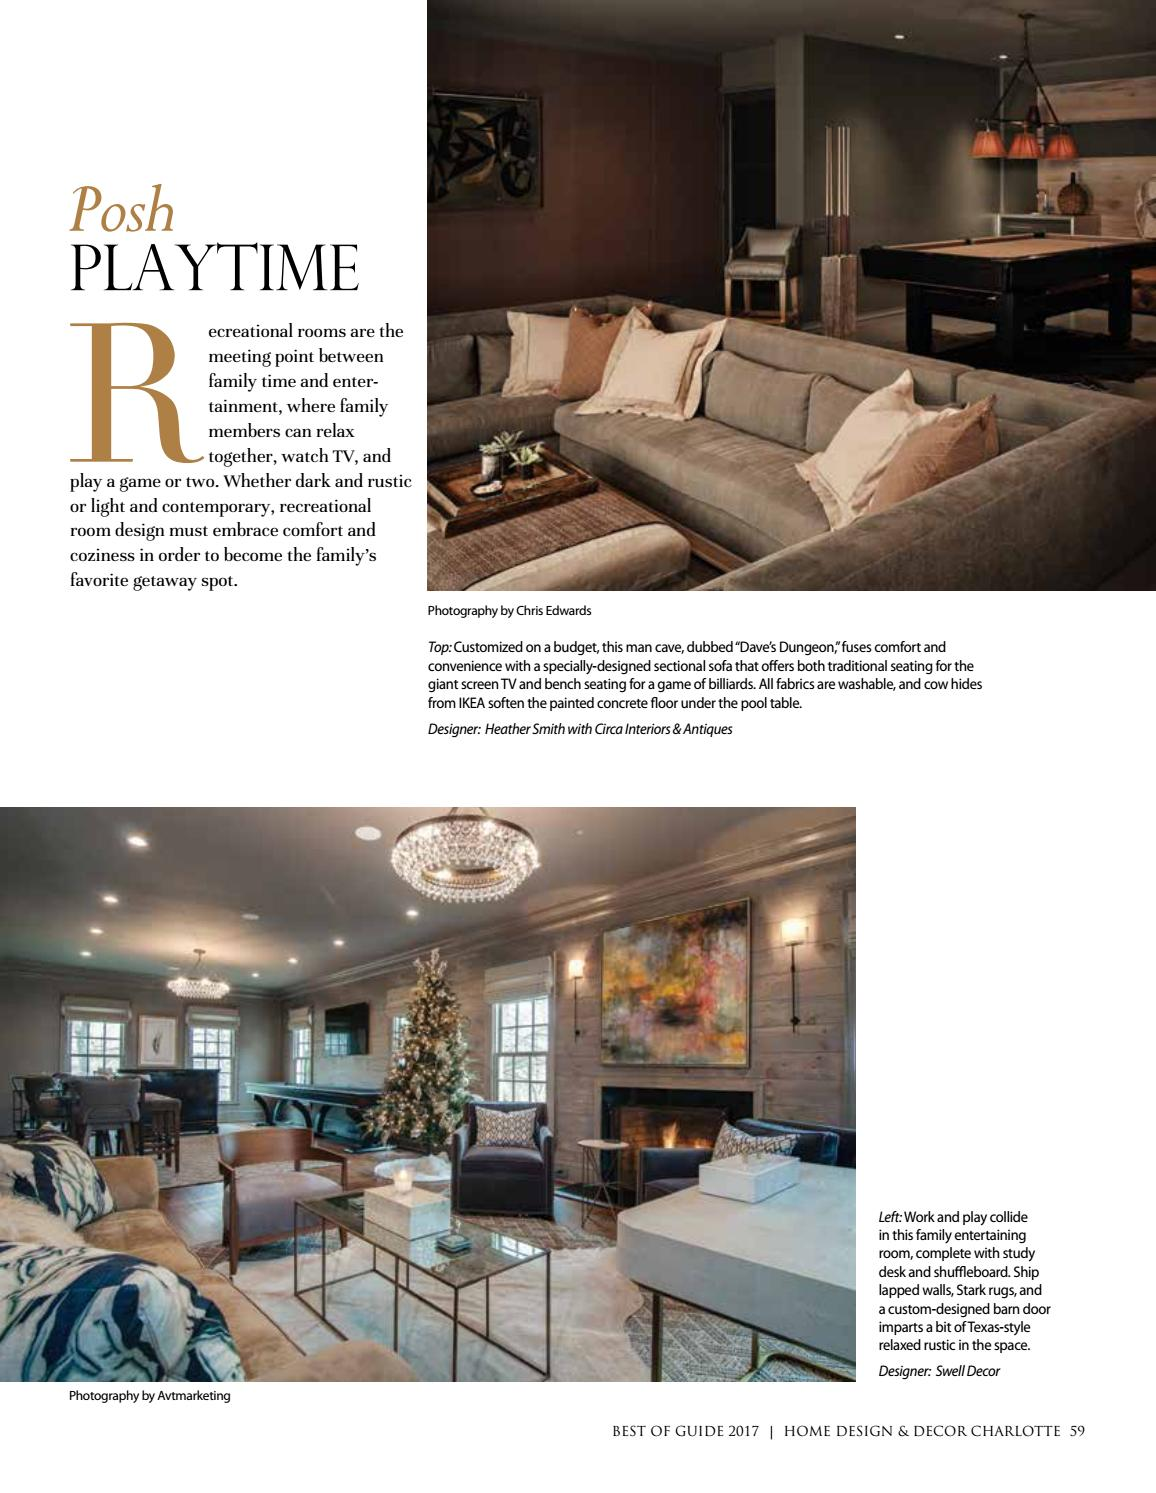 Charlotte Best Of Guide 2017 By Home Design Decor Magazine